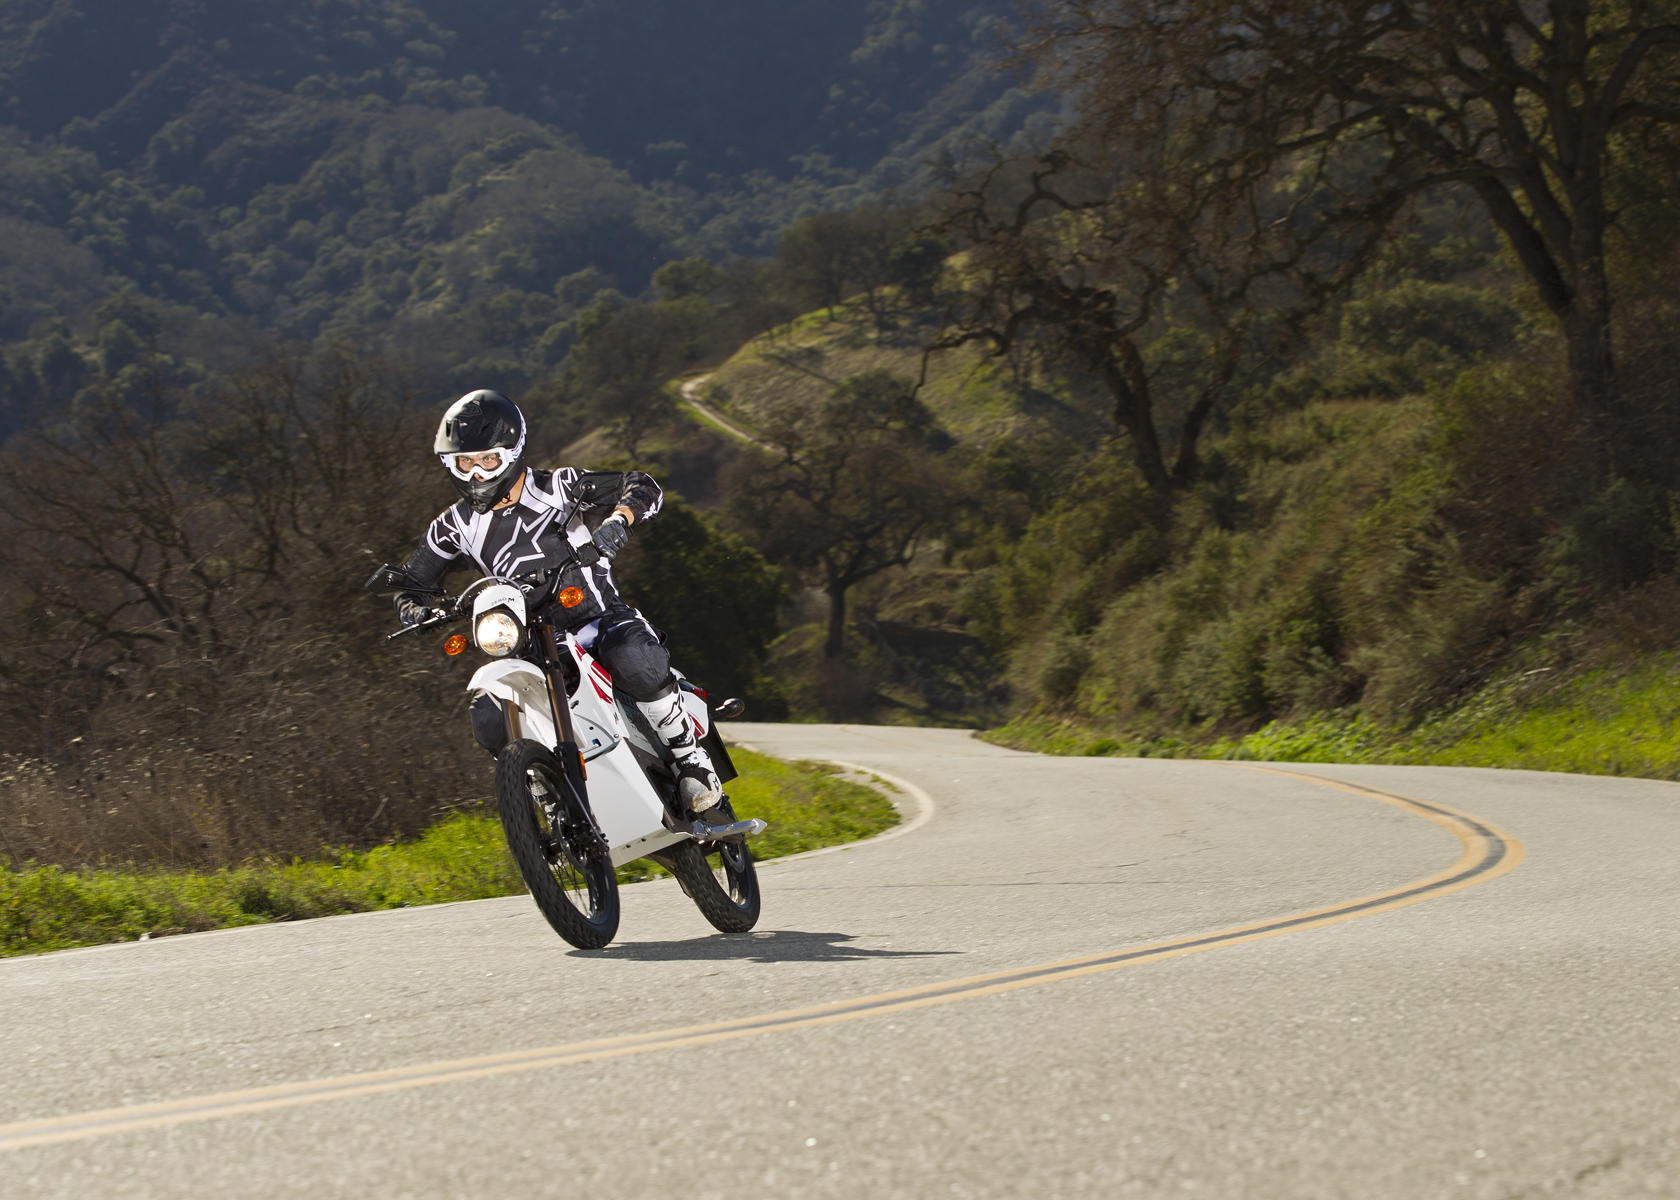 2011 Zero MX Electric Motorcycle: Cruising in the Country